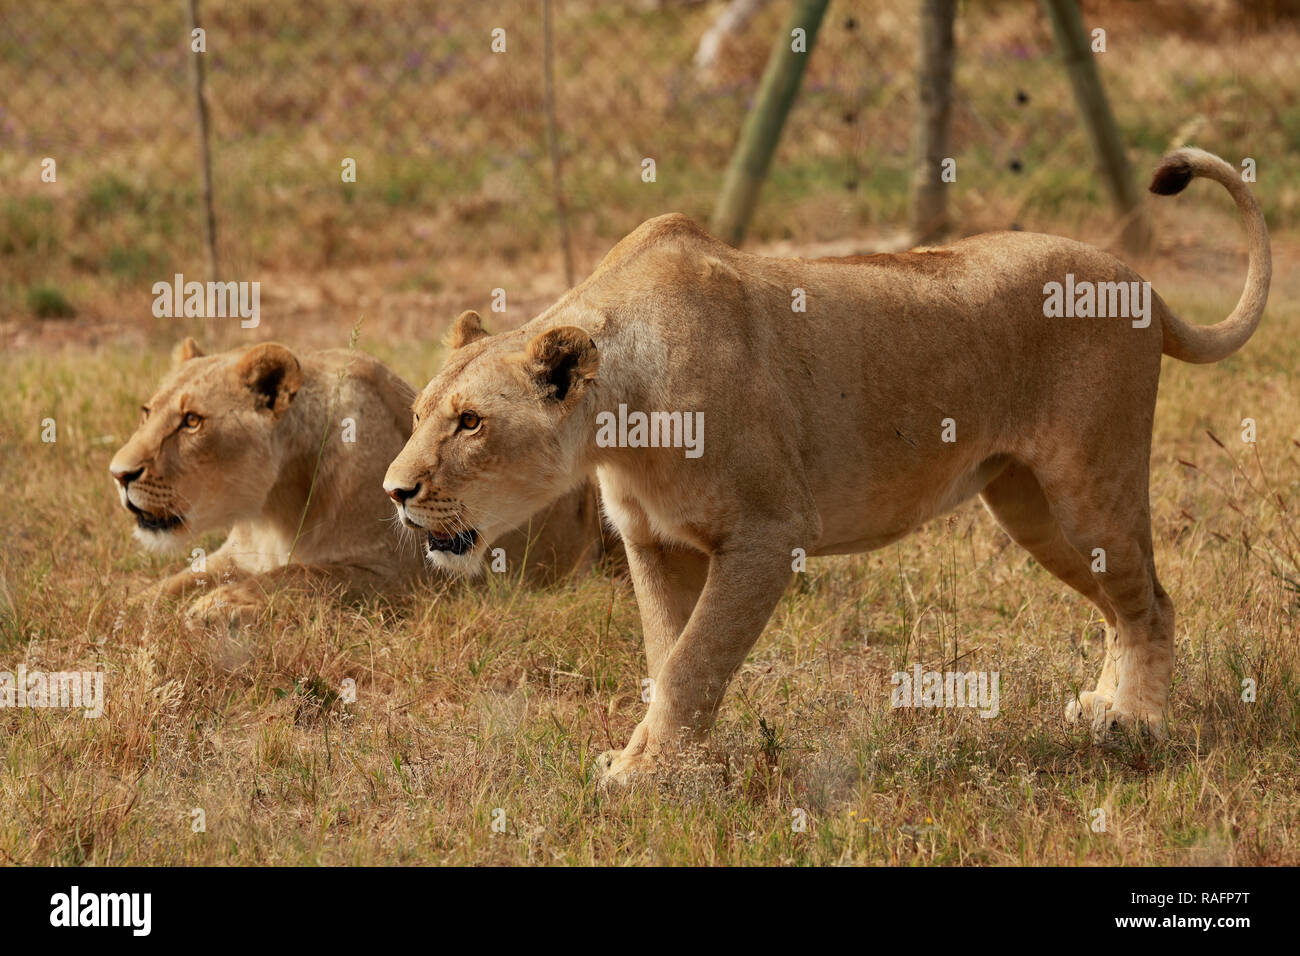 Lionesses (Panthera leo) waiting to be fed at the Drakenstein Lion Park, Klapmuts, Cape Winelands, South Africa. - Stock Image